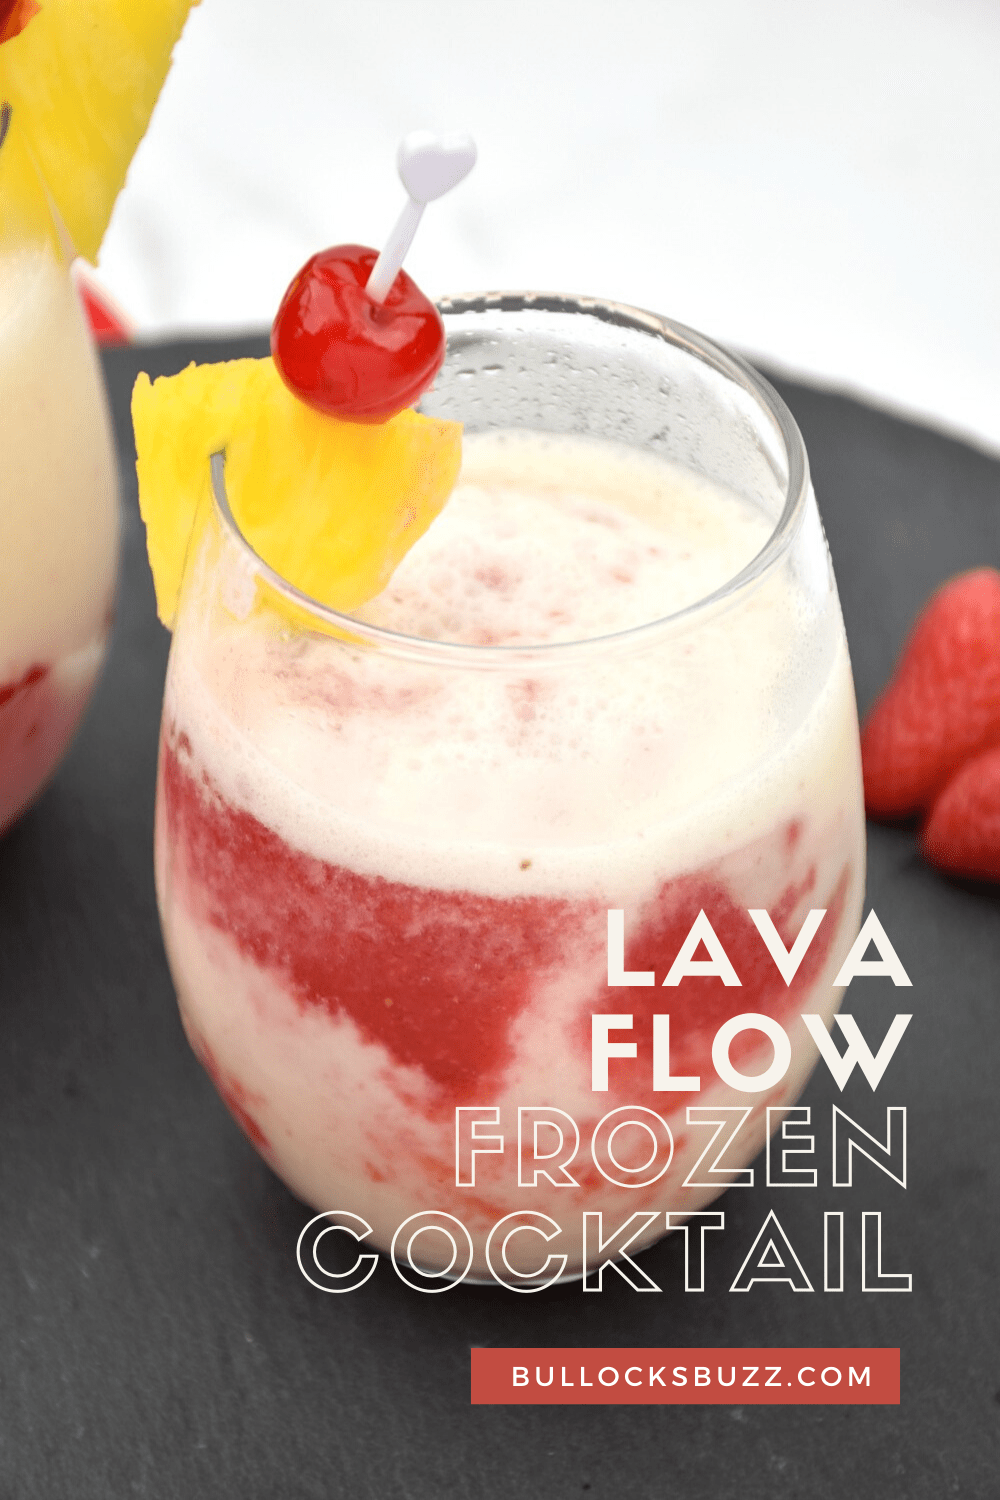 Pineapple, coconut, strawberry, and rum come together to create a deliciously cold and fruity drink in this Lava Flow Cocktail recipe. One sip will transport you to a tropical paradise! #cocktails #lavaflowcocktail